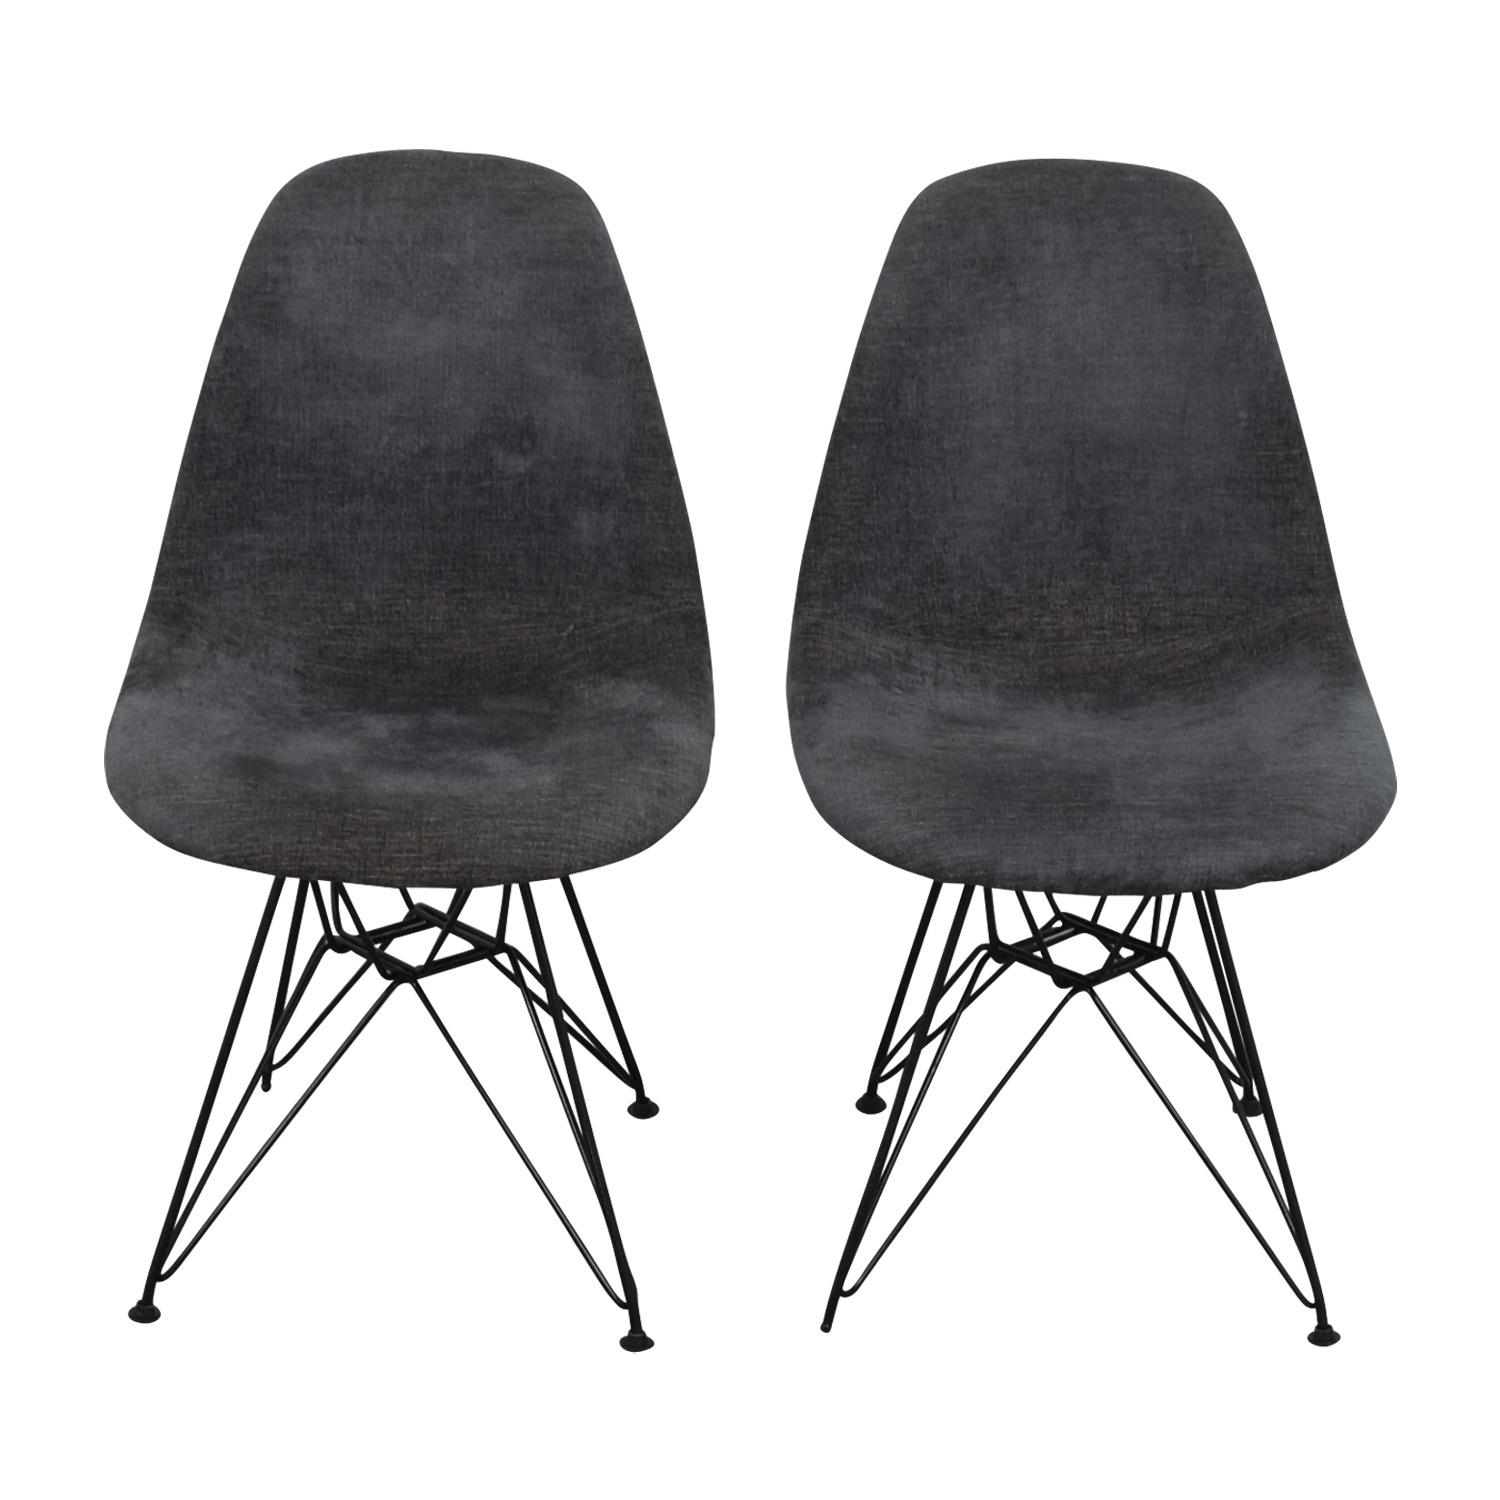 west elm grey chairs  dining chairs .  off  west elm west elm grey chairs  chairs